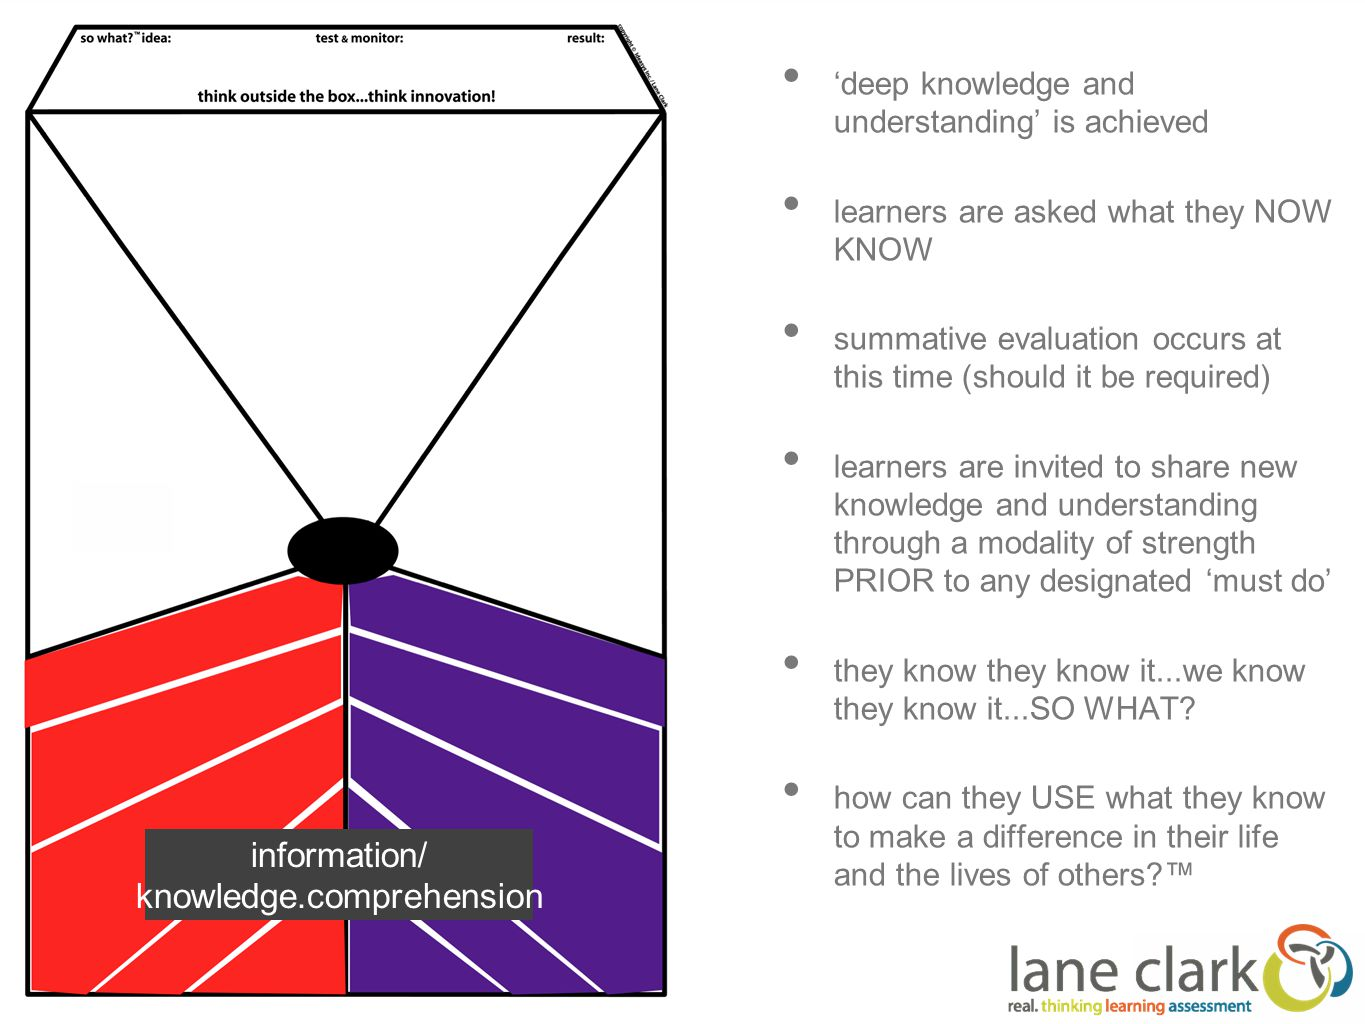 'deep knowledge and understanding' is achieved learners are asked what they NOW KNOW summative evaluation occurs at this time (should it be required) learners are invited to share new knowledge and understanding through a modality of strength PRIOR to any designated 'must do' they know they know it...we know they know it...SO WHAT.